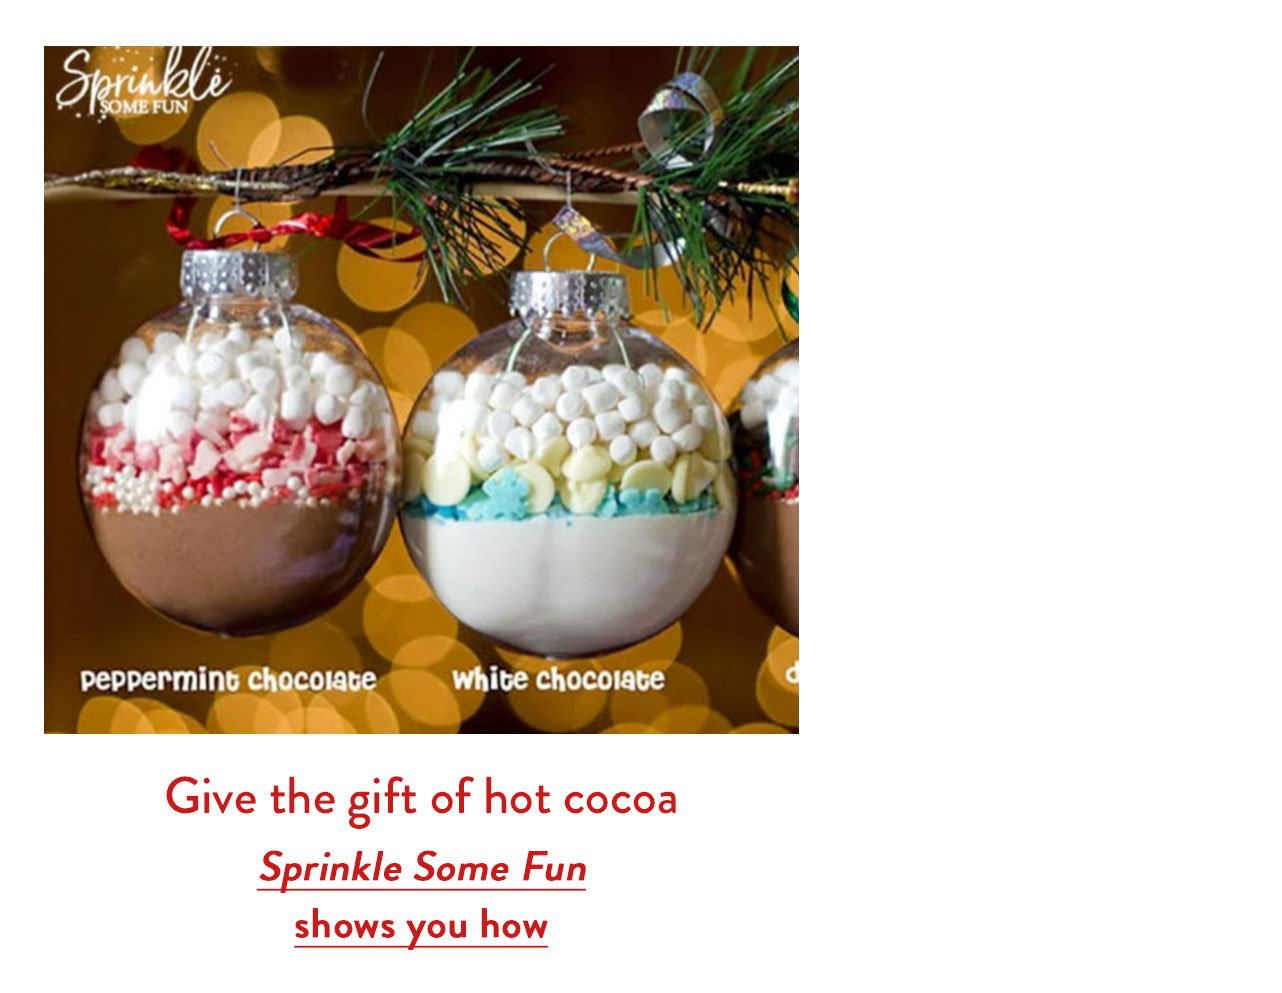 Give the gift of hot cocoa